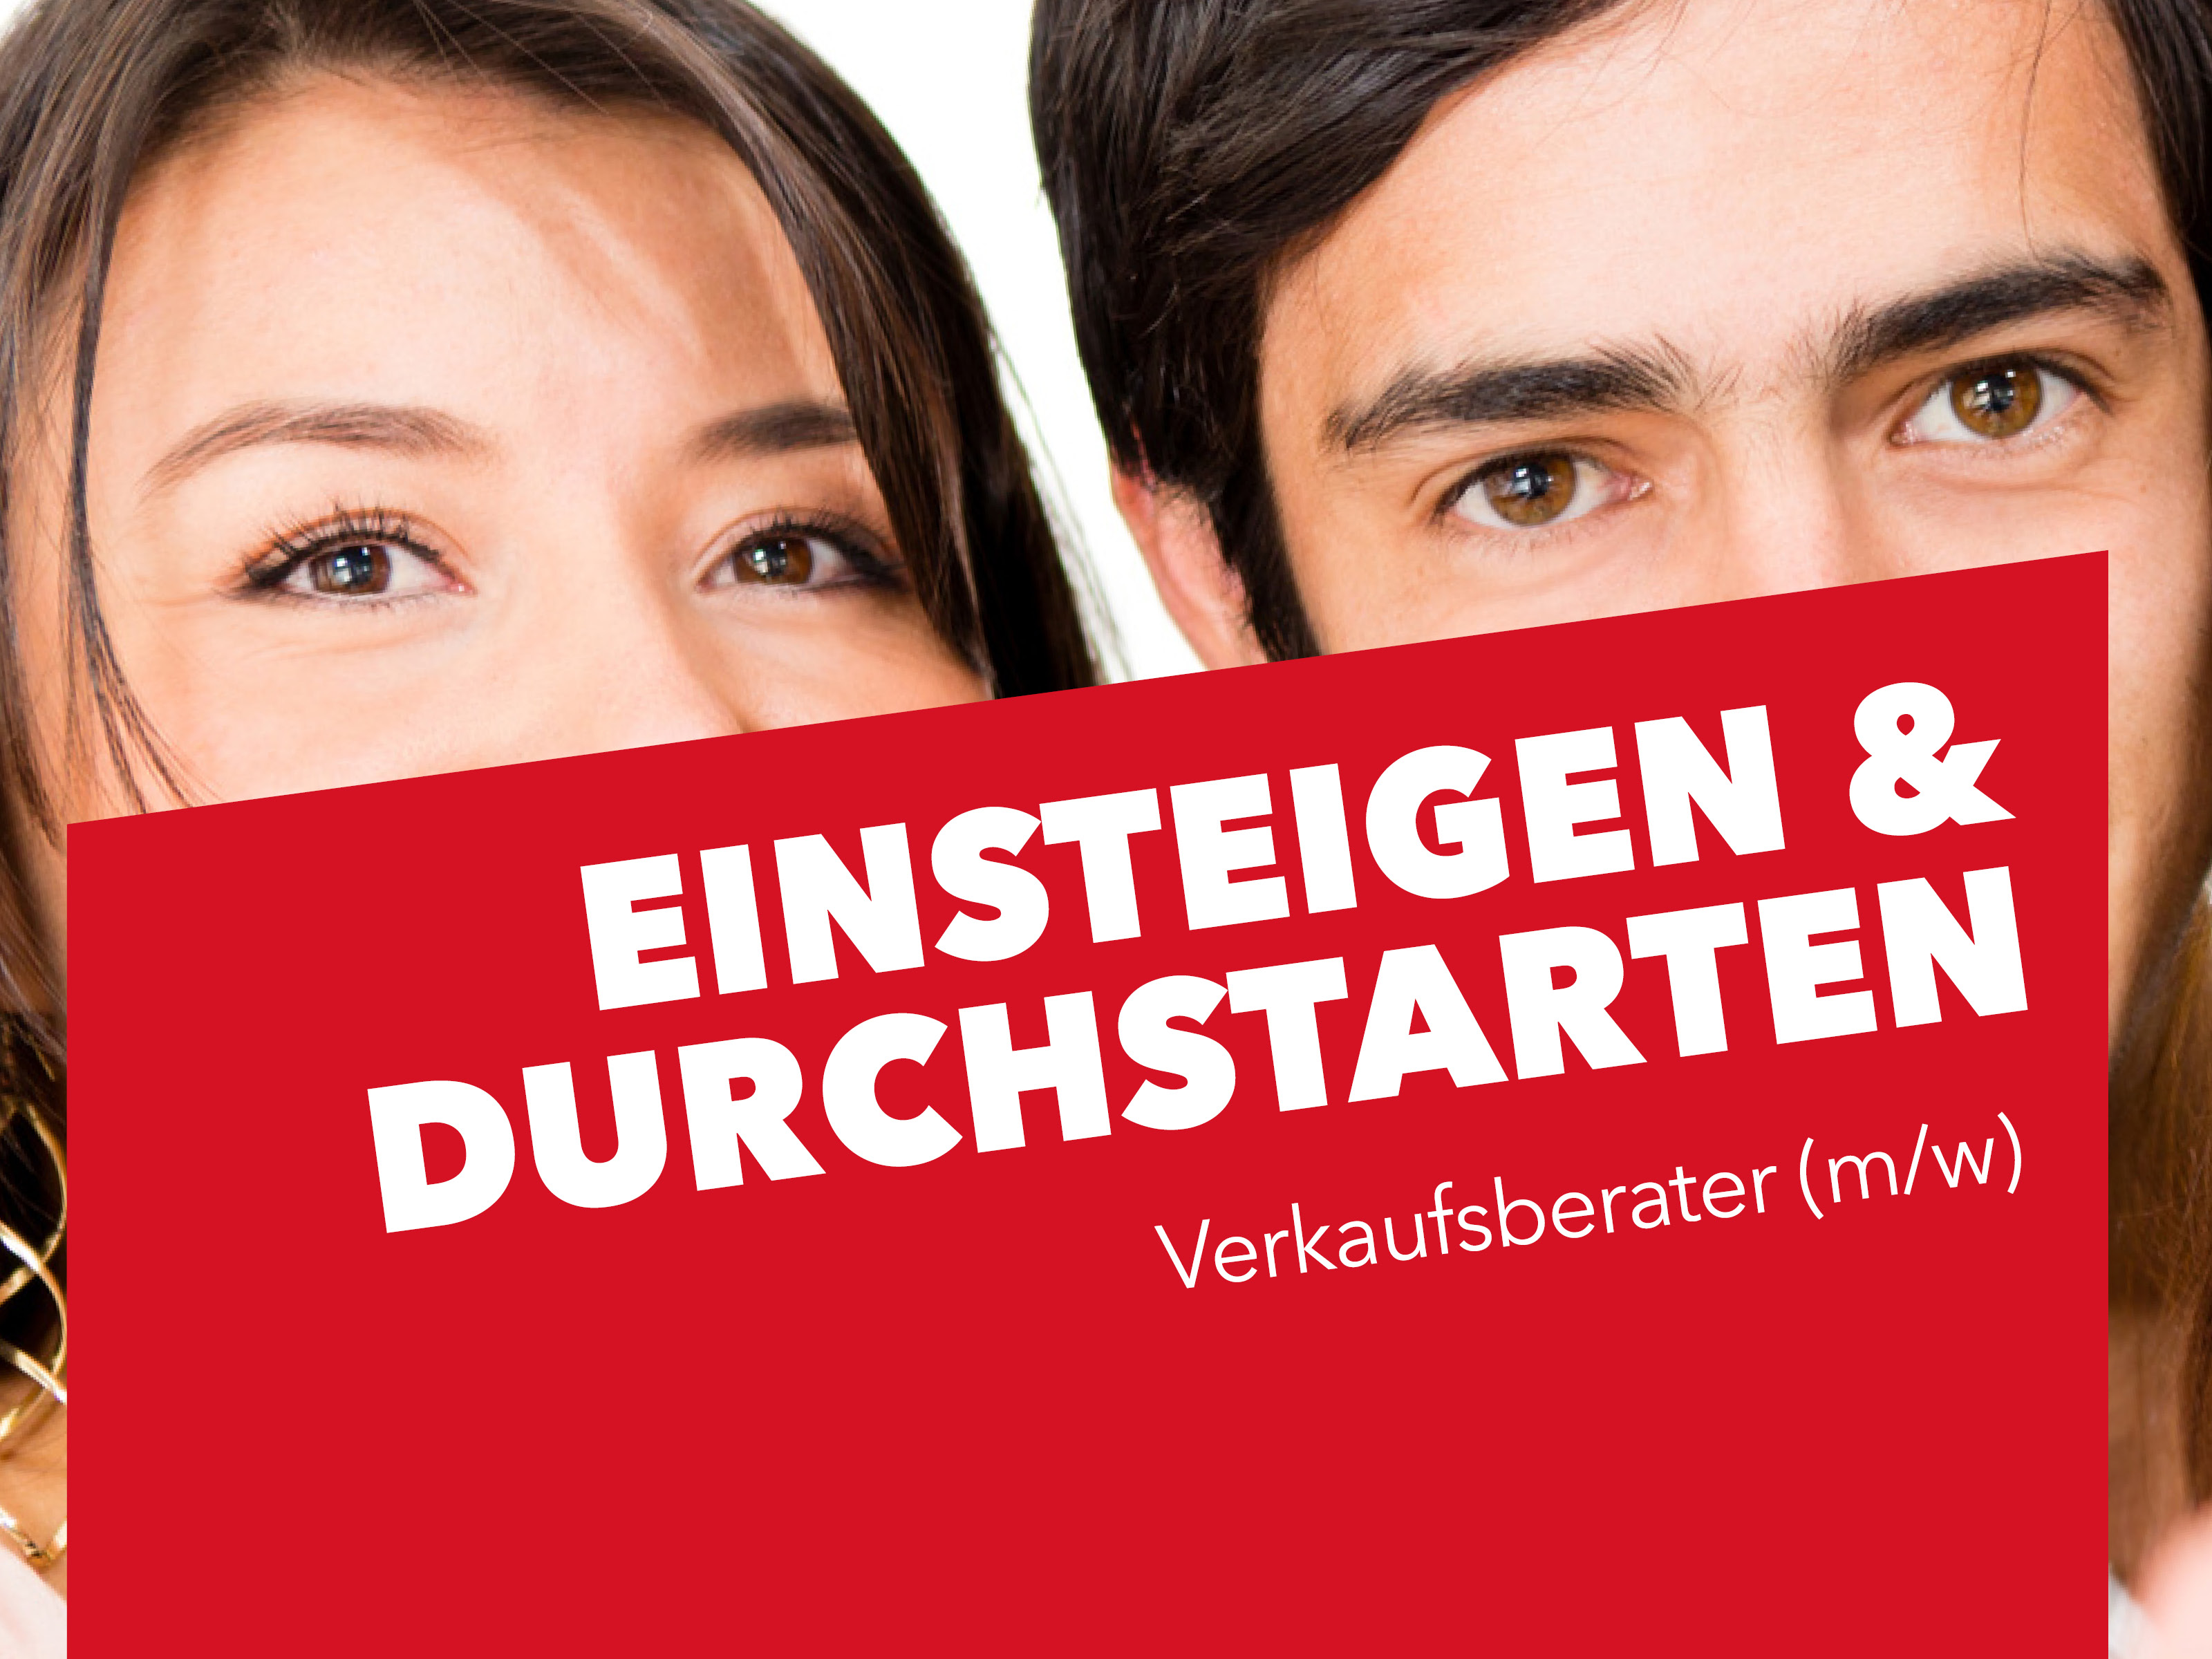 Verkaufsberater (m/w) in Kempten